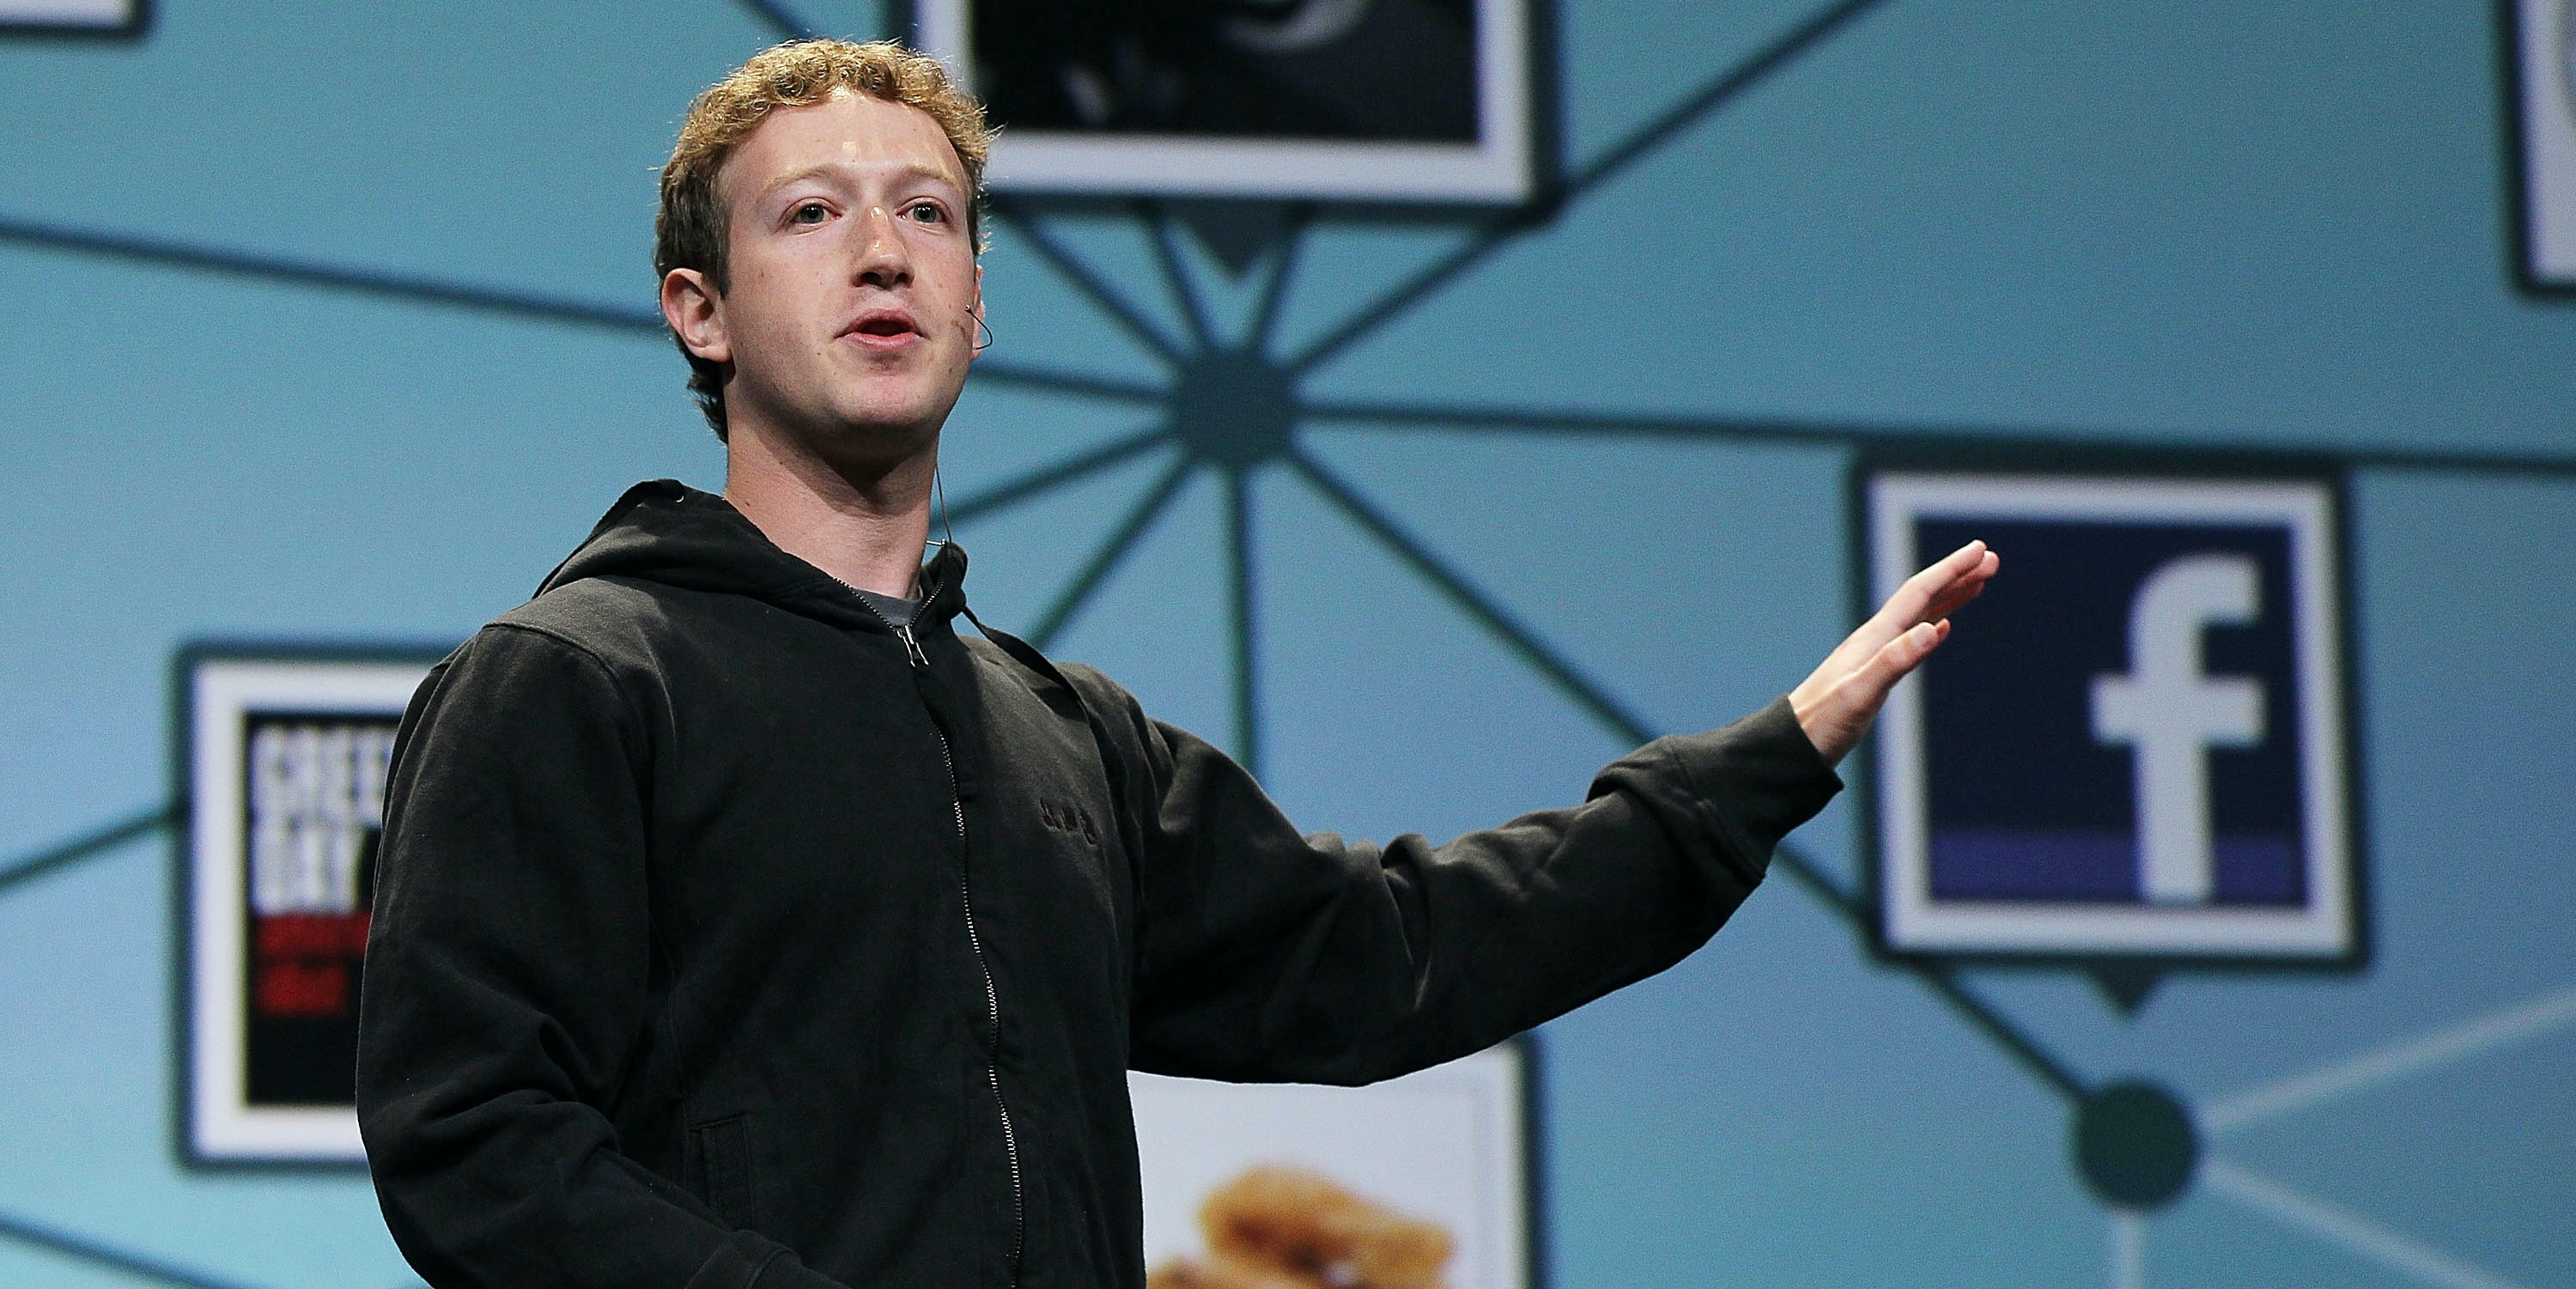 Mark Zuckerberg is finally doing something about fake news on Facebook.